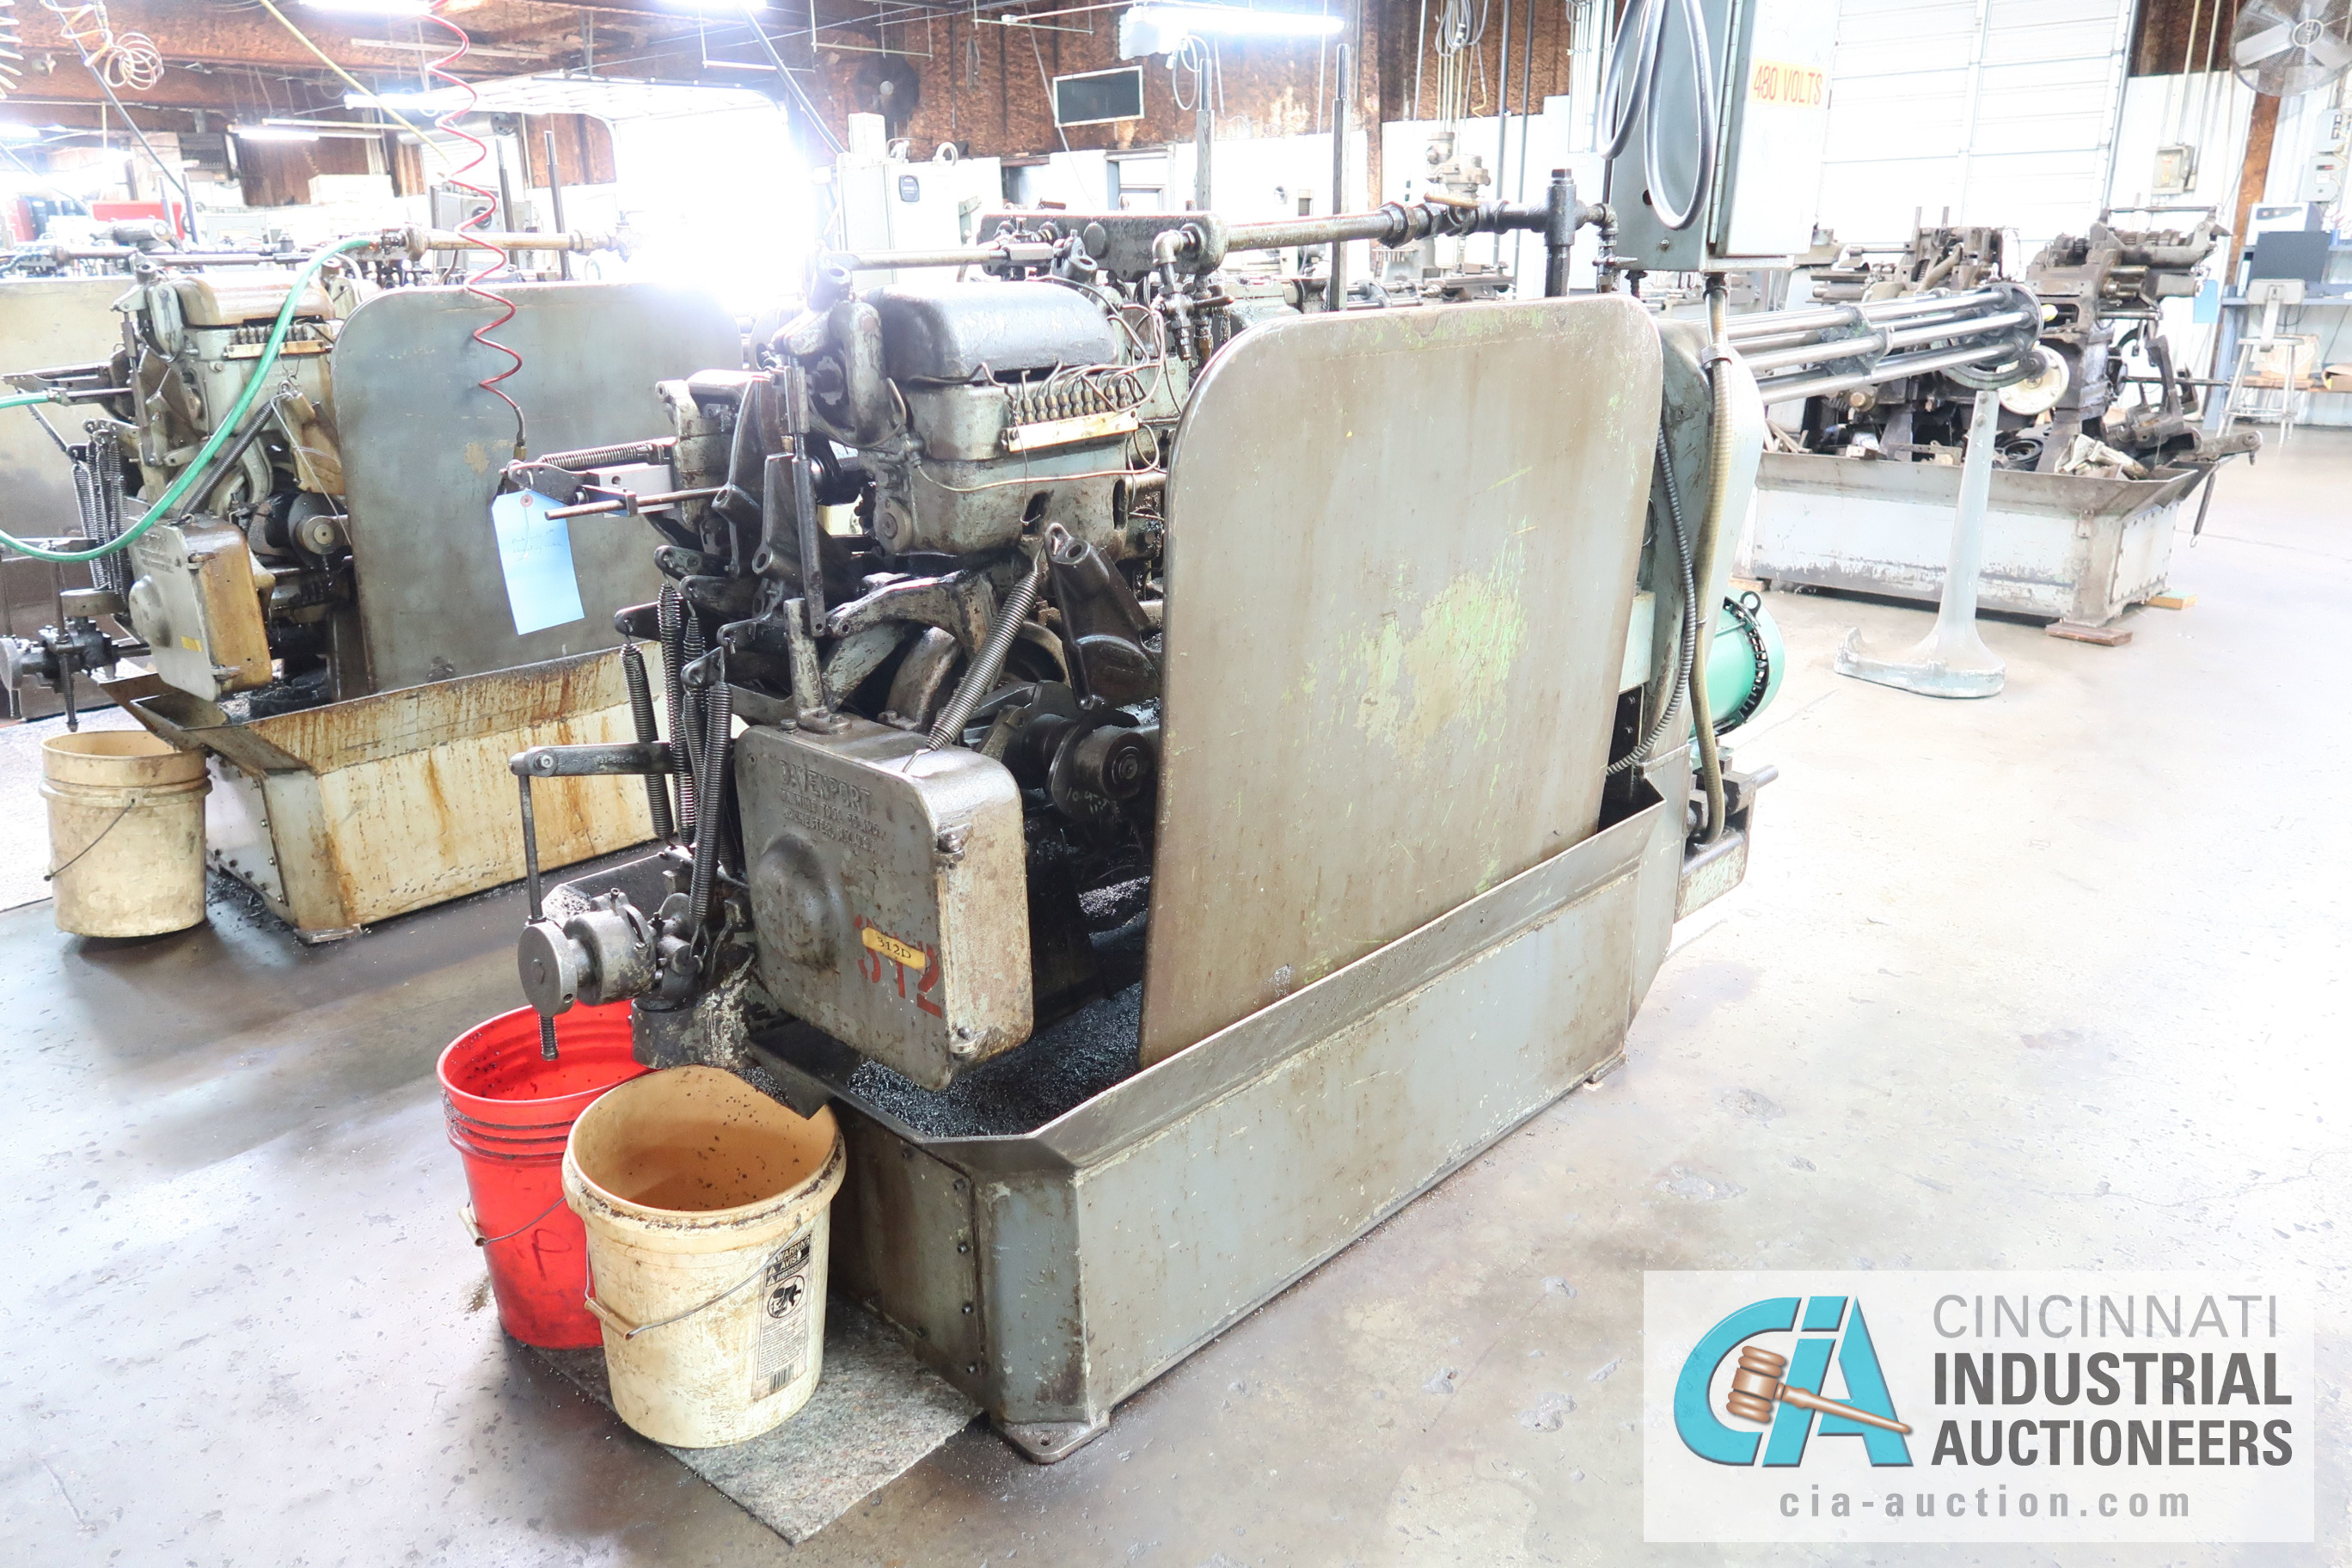 """3/4"""" DAVENPORT 5-SPINDLE SCREW MACHINE; S/N 5698, WITH PICKOFF ATTACHMENT AND THREADING CLUTCH, - Image 2 of 4"""